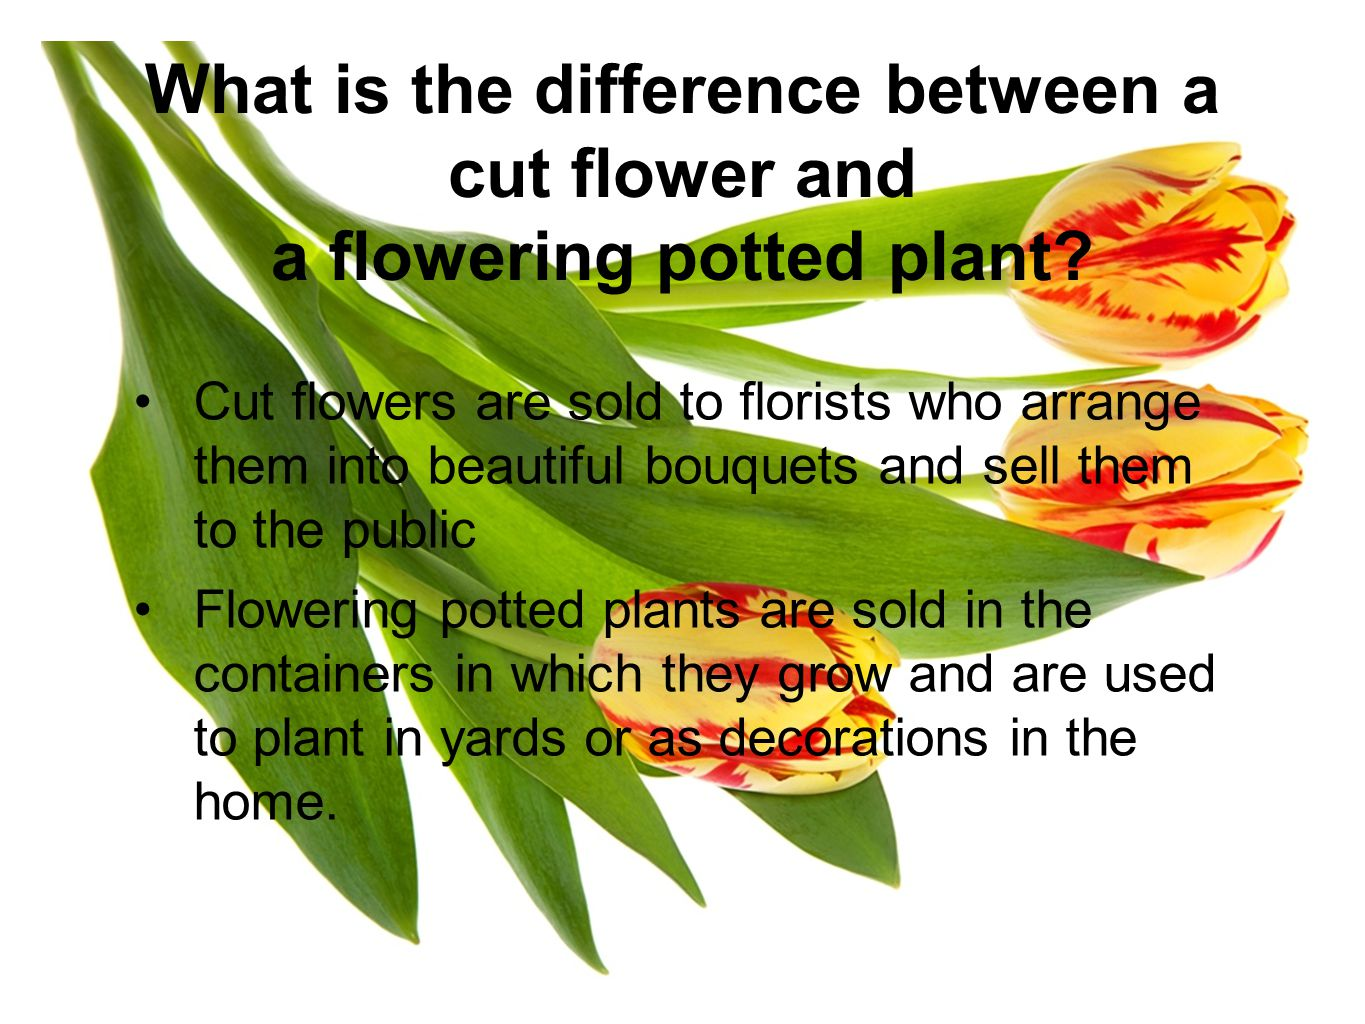 What is the difference between a cut flower and a flowering potted plant